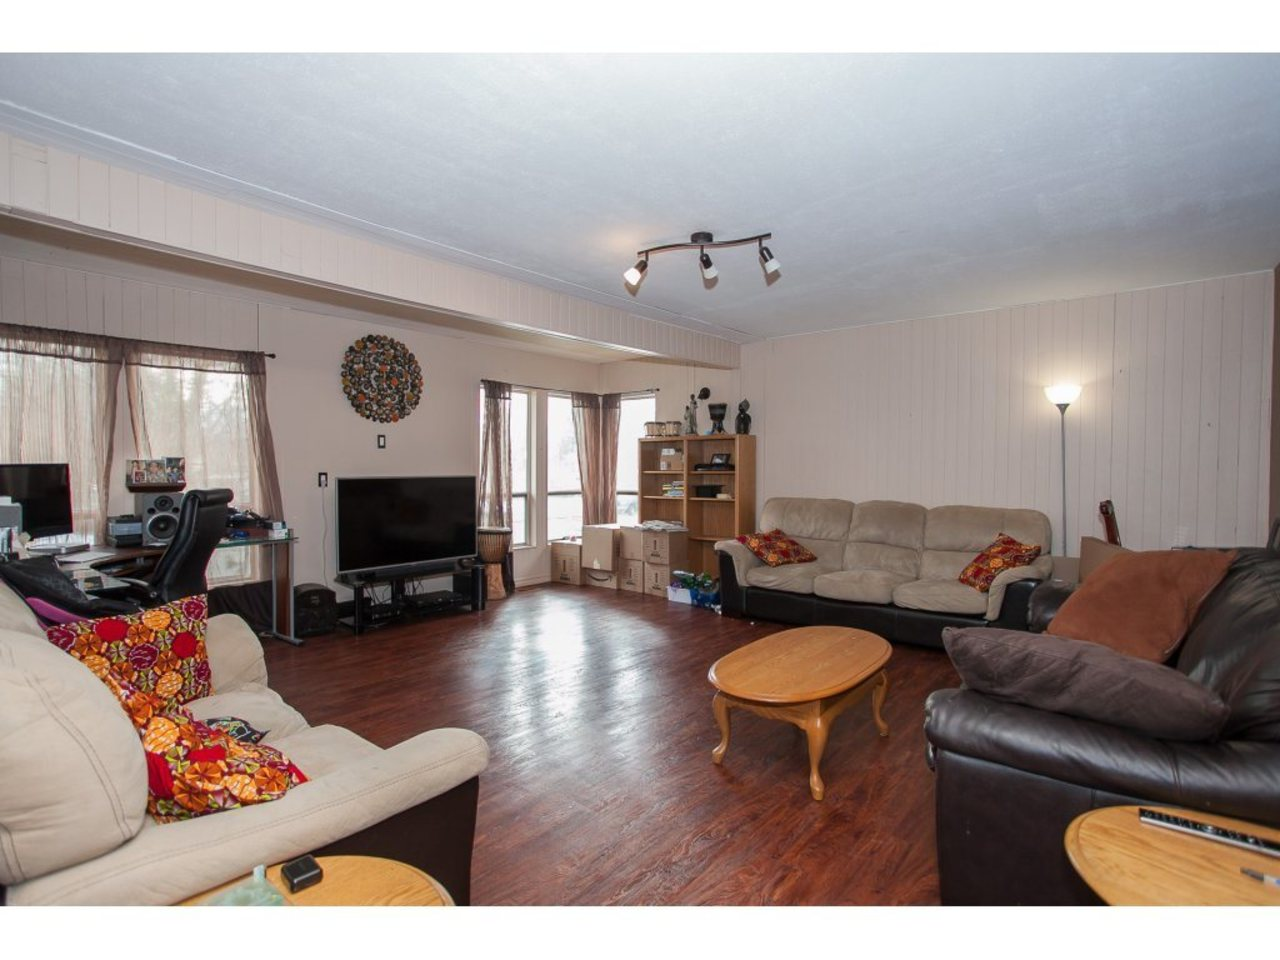 Living Room -Listed by Solon REM, Top Langley & Fraser Valley Realtor  at 19943 Brydon, Langley City, Langley